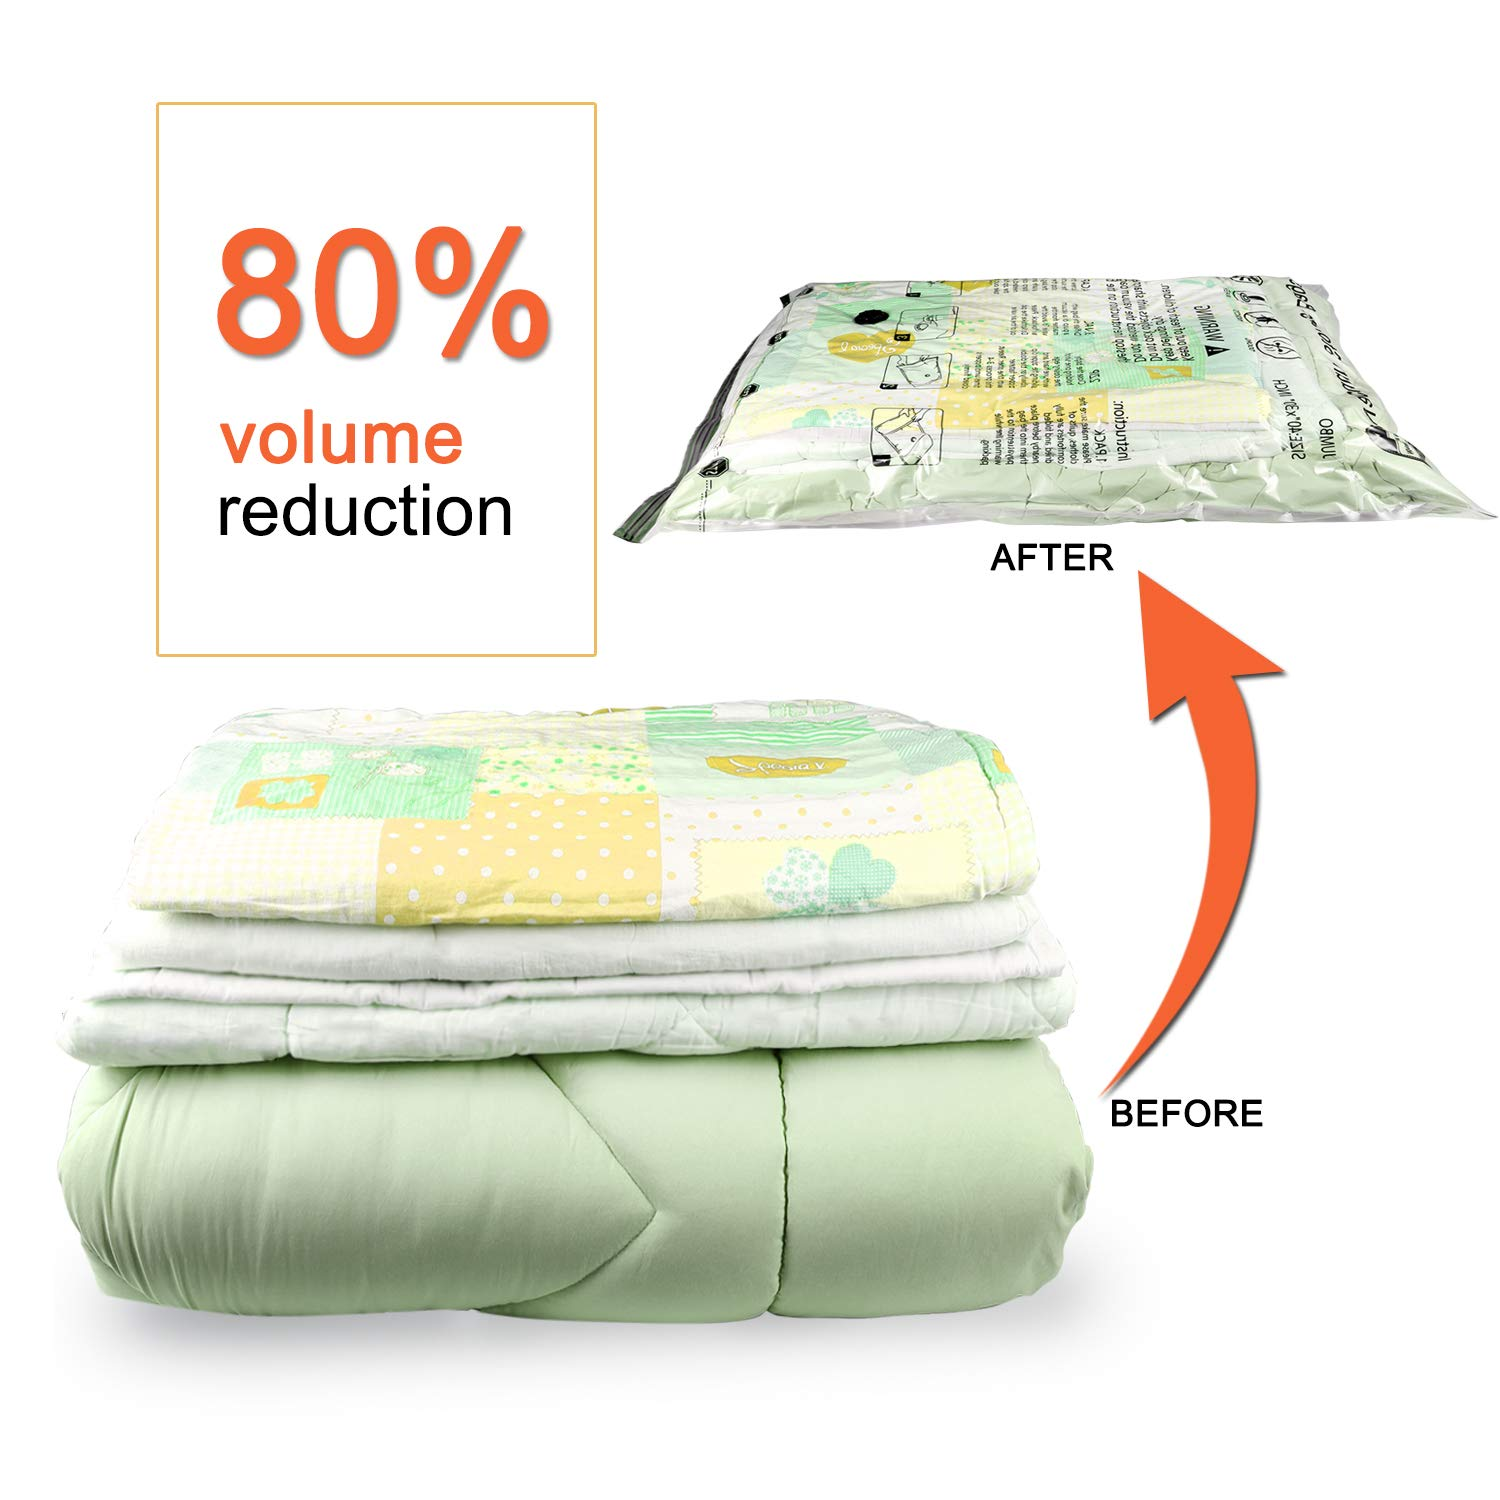 Travel Hand Pump Included SUOCO VAC-2004 Comforters 80/% More Space Saver Bags for Clothes Pillows Blankets 4 x Large, 4 x Jumbo Premium Vacuum Storage Bags 8 Pack